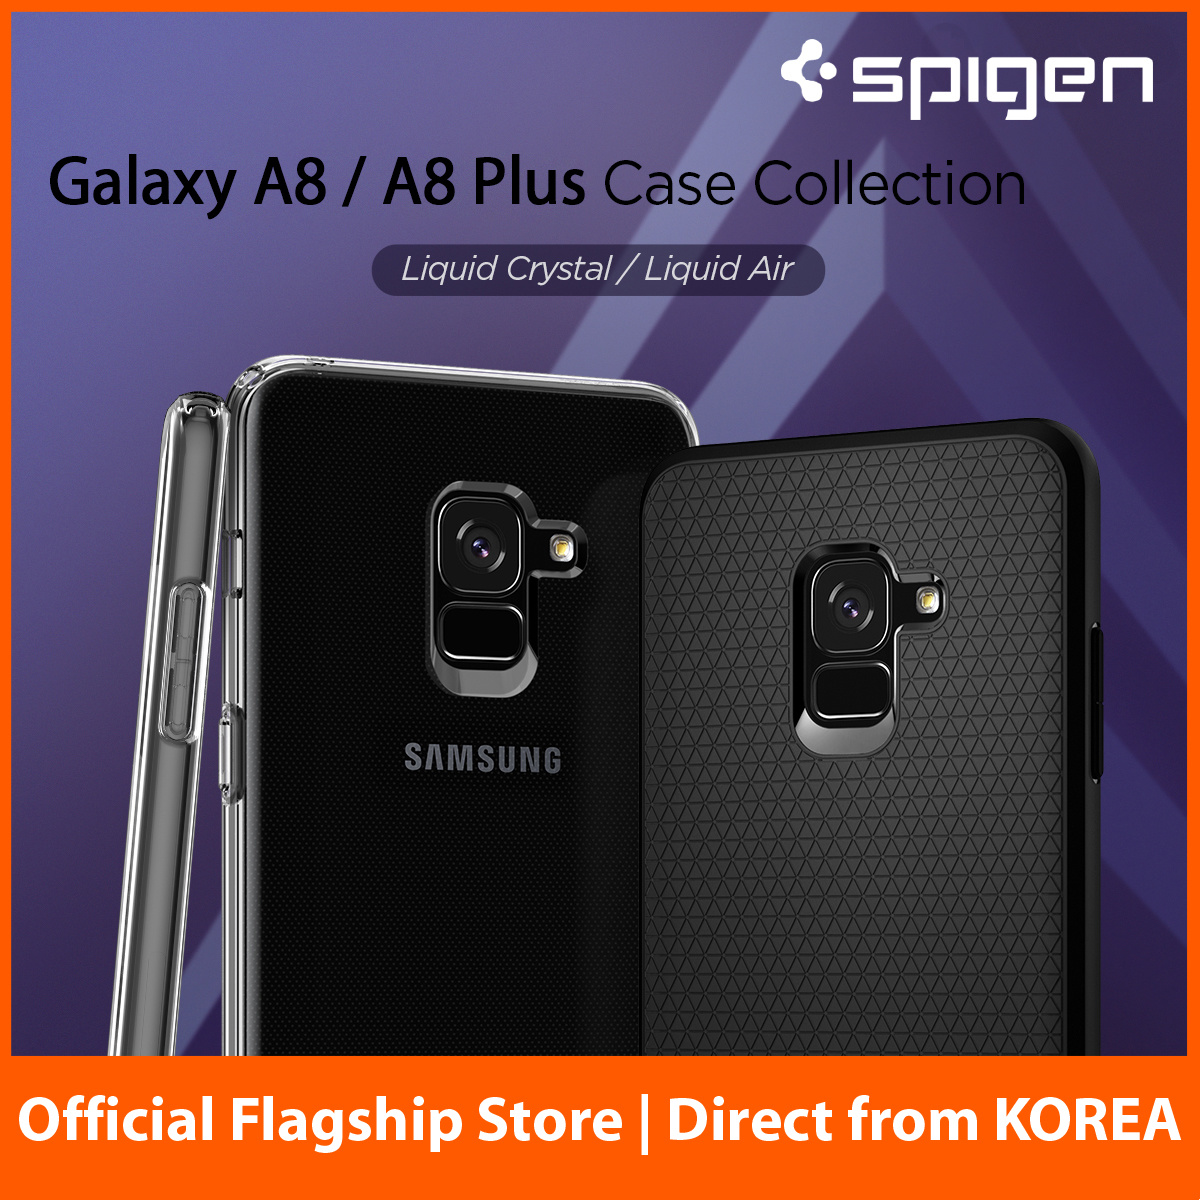 Qoo10 Spigen A8 2018 Mobile Accessories Galaxy Note 9 Case Slim Armor Crystal Original Clear Show All Item Images